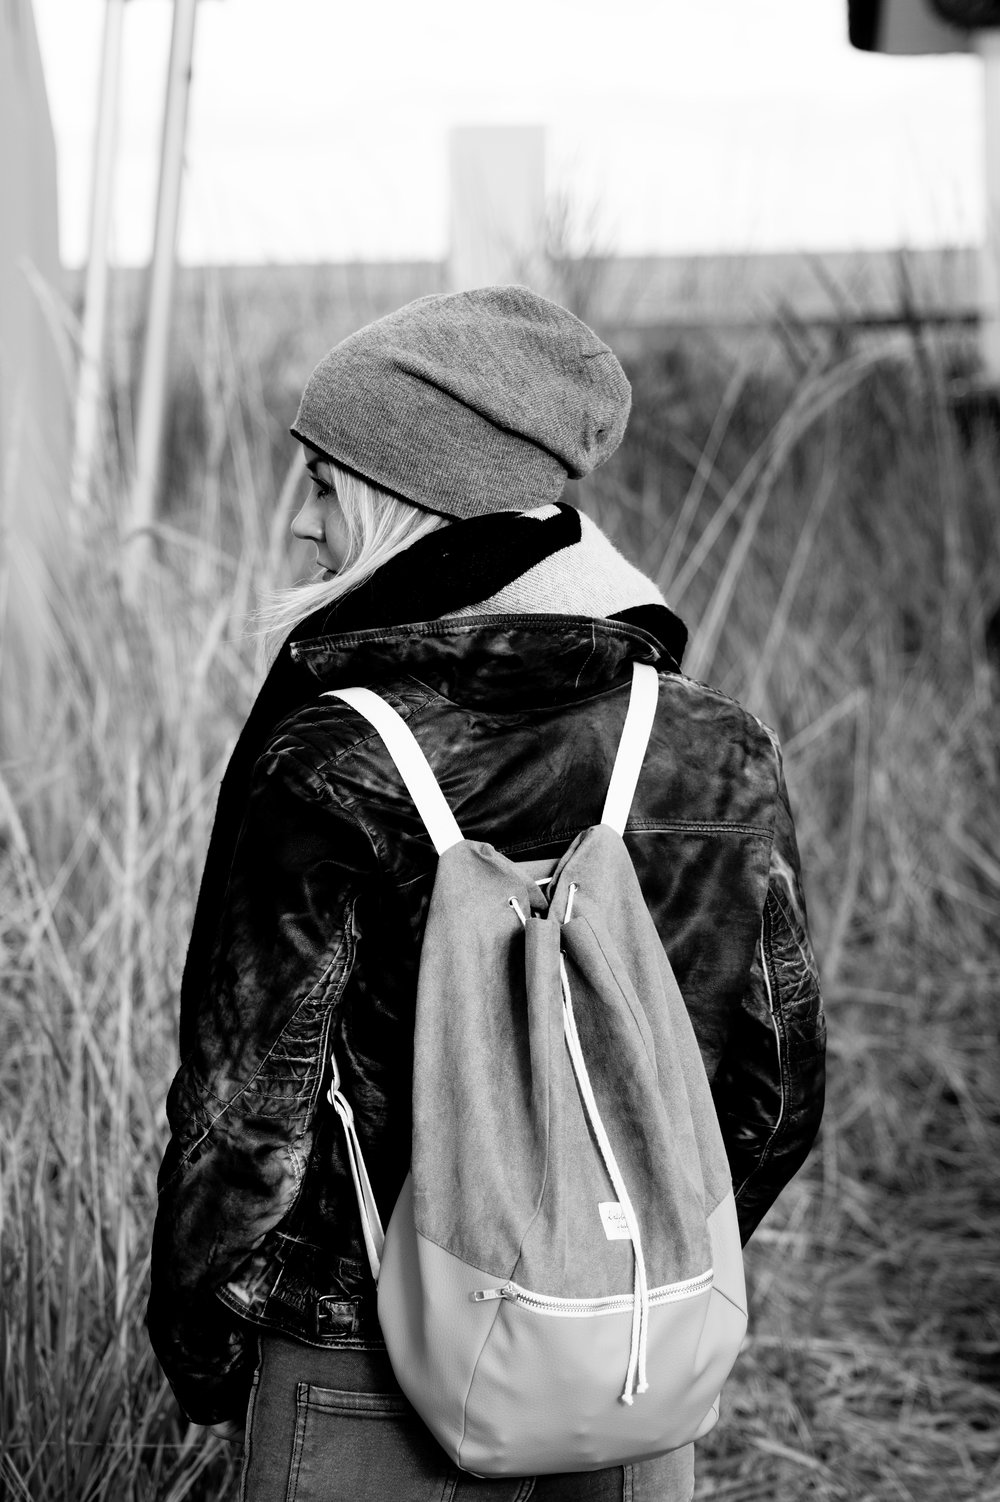 LOVE&SOUL bagpack from Kaliber Fashion Berlin